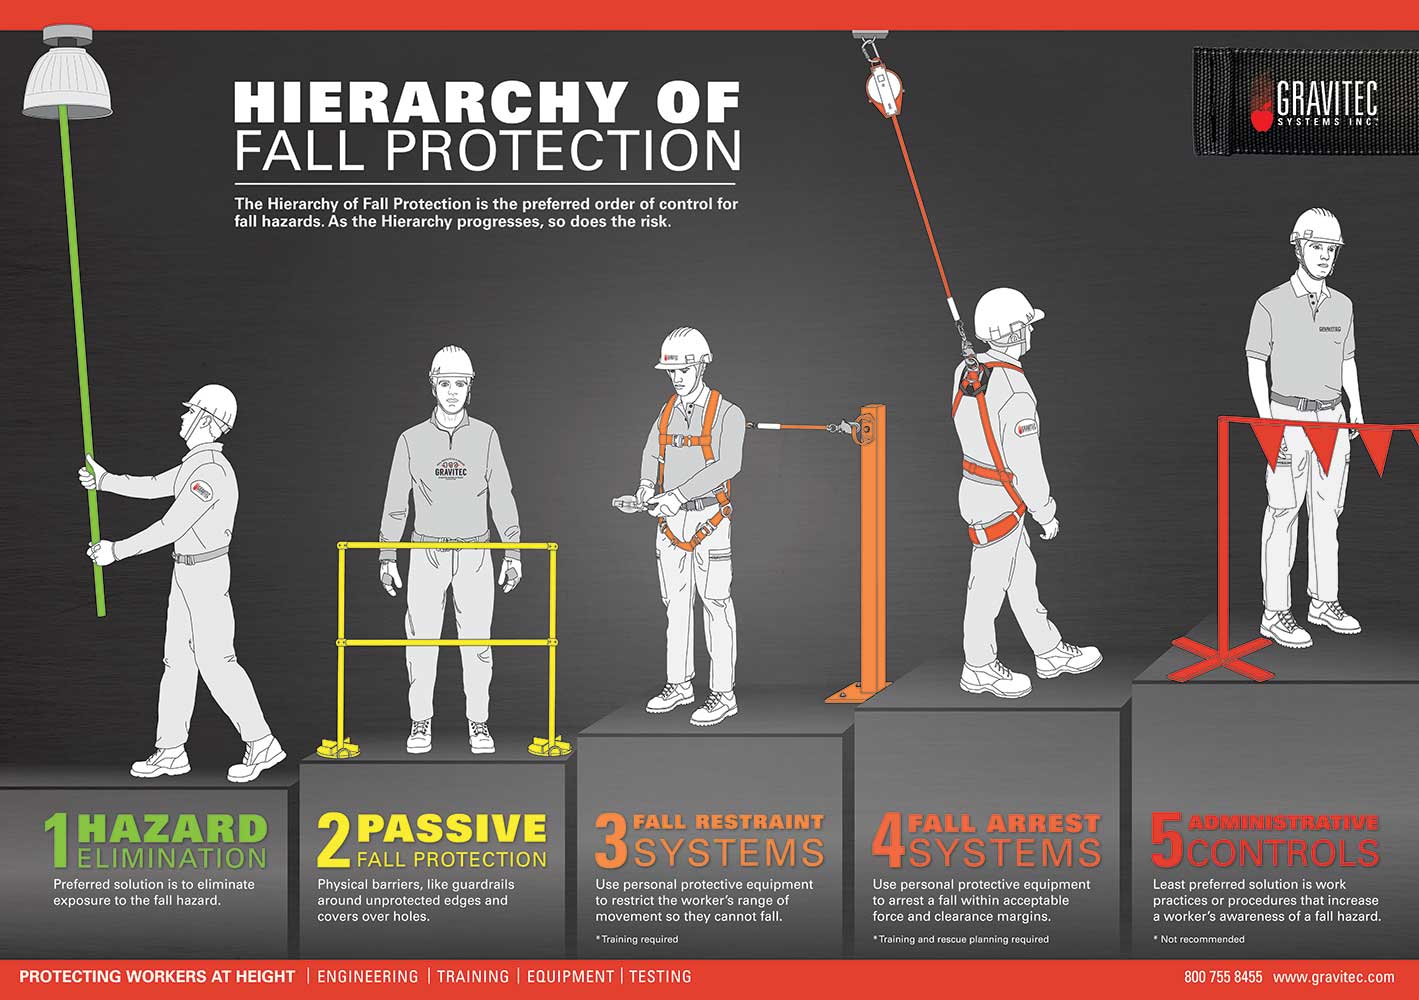 Image illustrating the five types of fall protection in order of decreasing safety